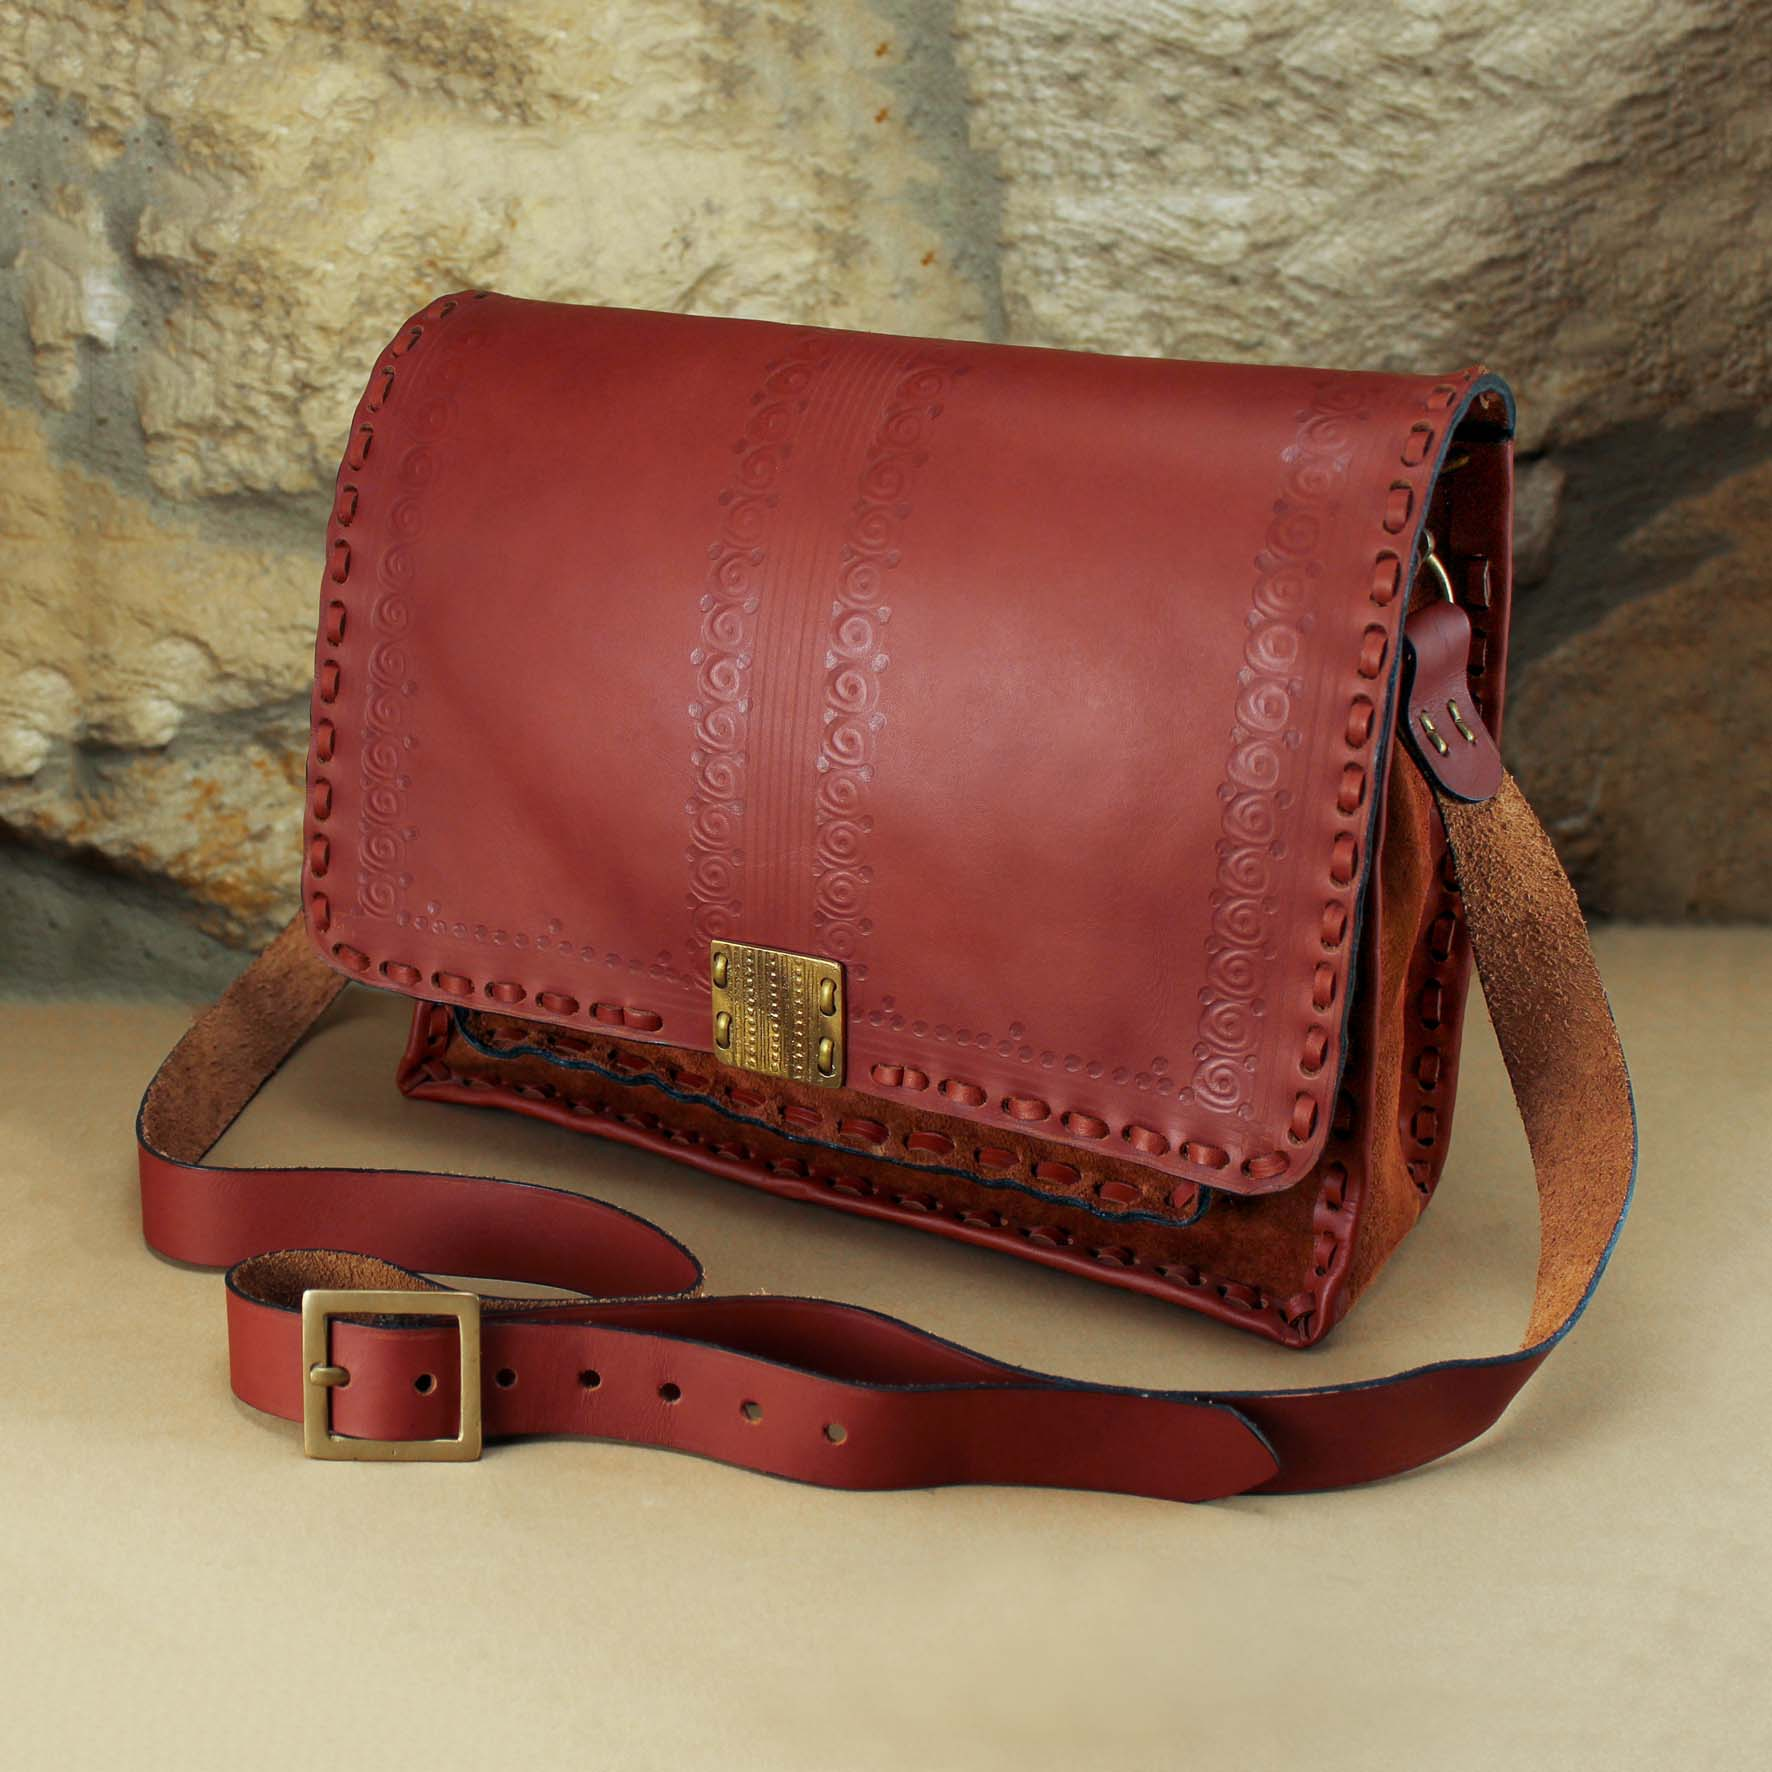 Leather Cross bag